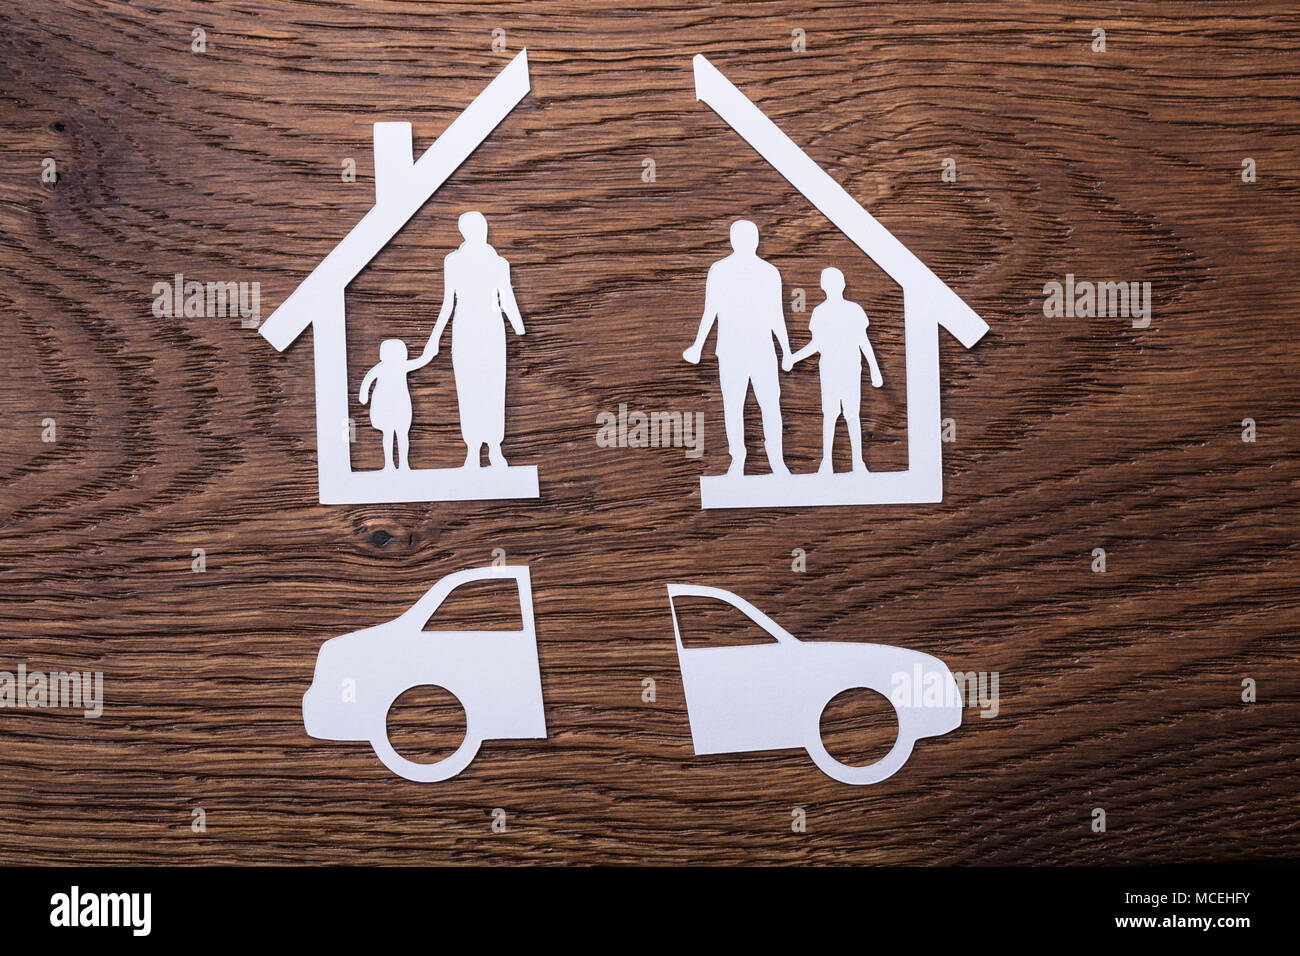 White Paper Cutout Of A Family Split Apart With Car On Wooden Background - Stock Image